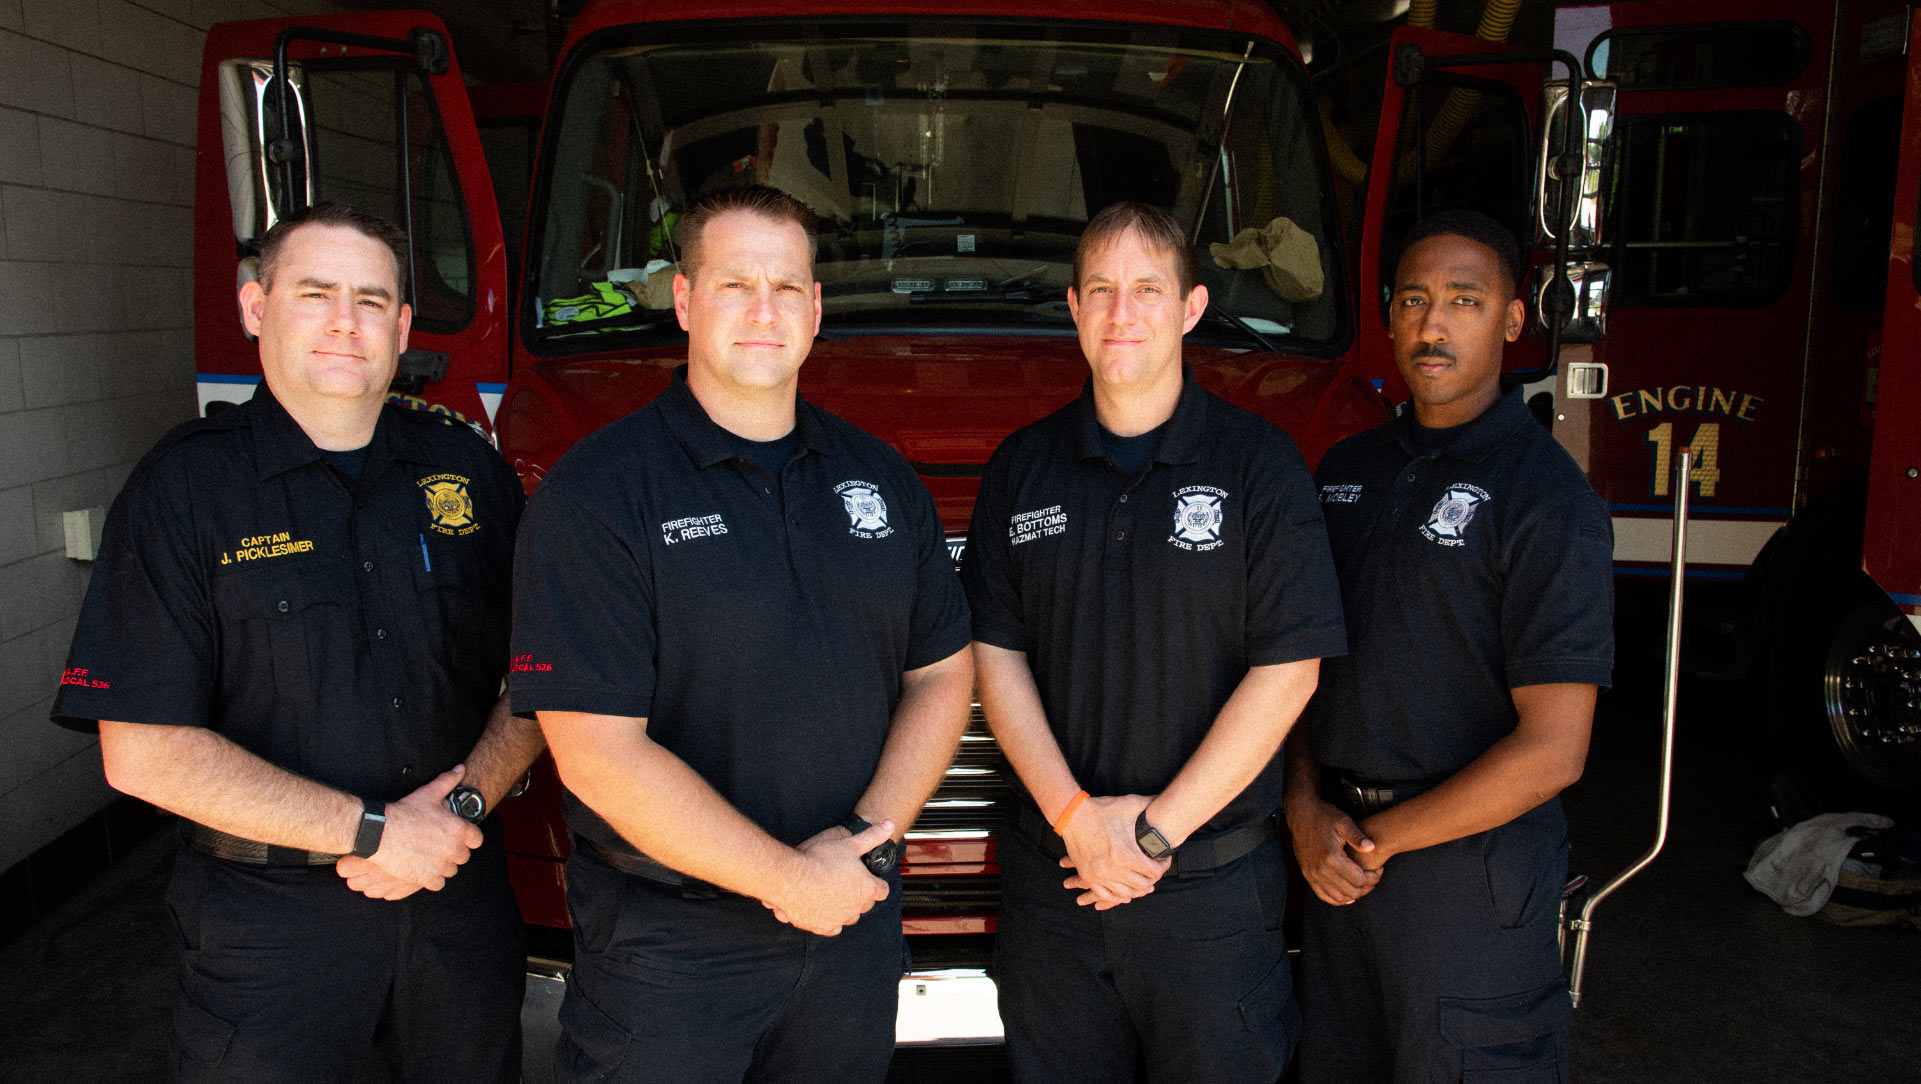 Four adult men in EMS and Fire Rescue uniforms standing with their hands clasped in front of a fire engine.